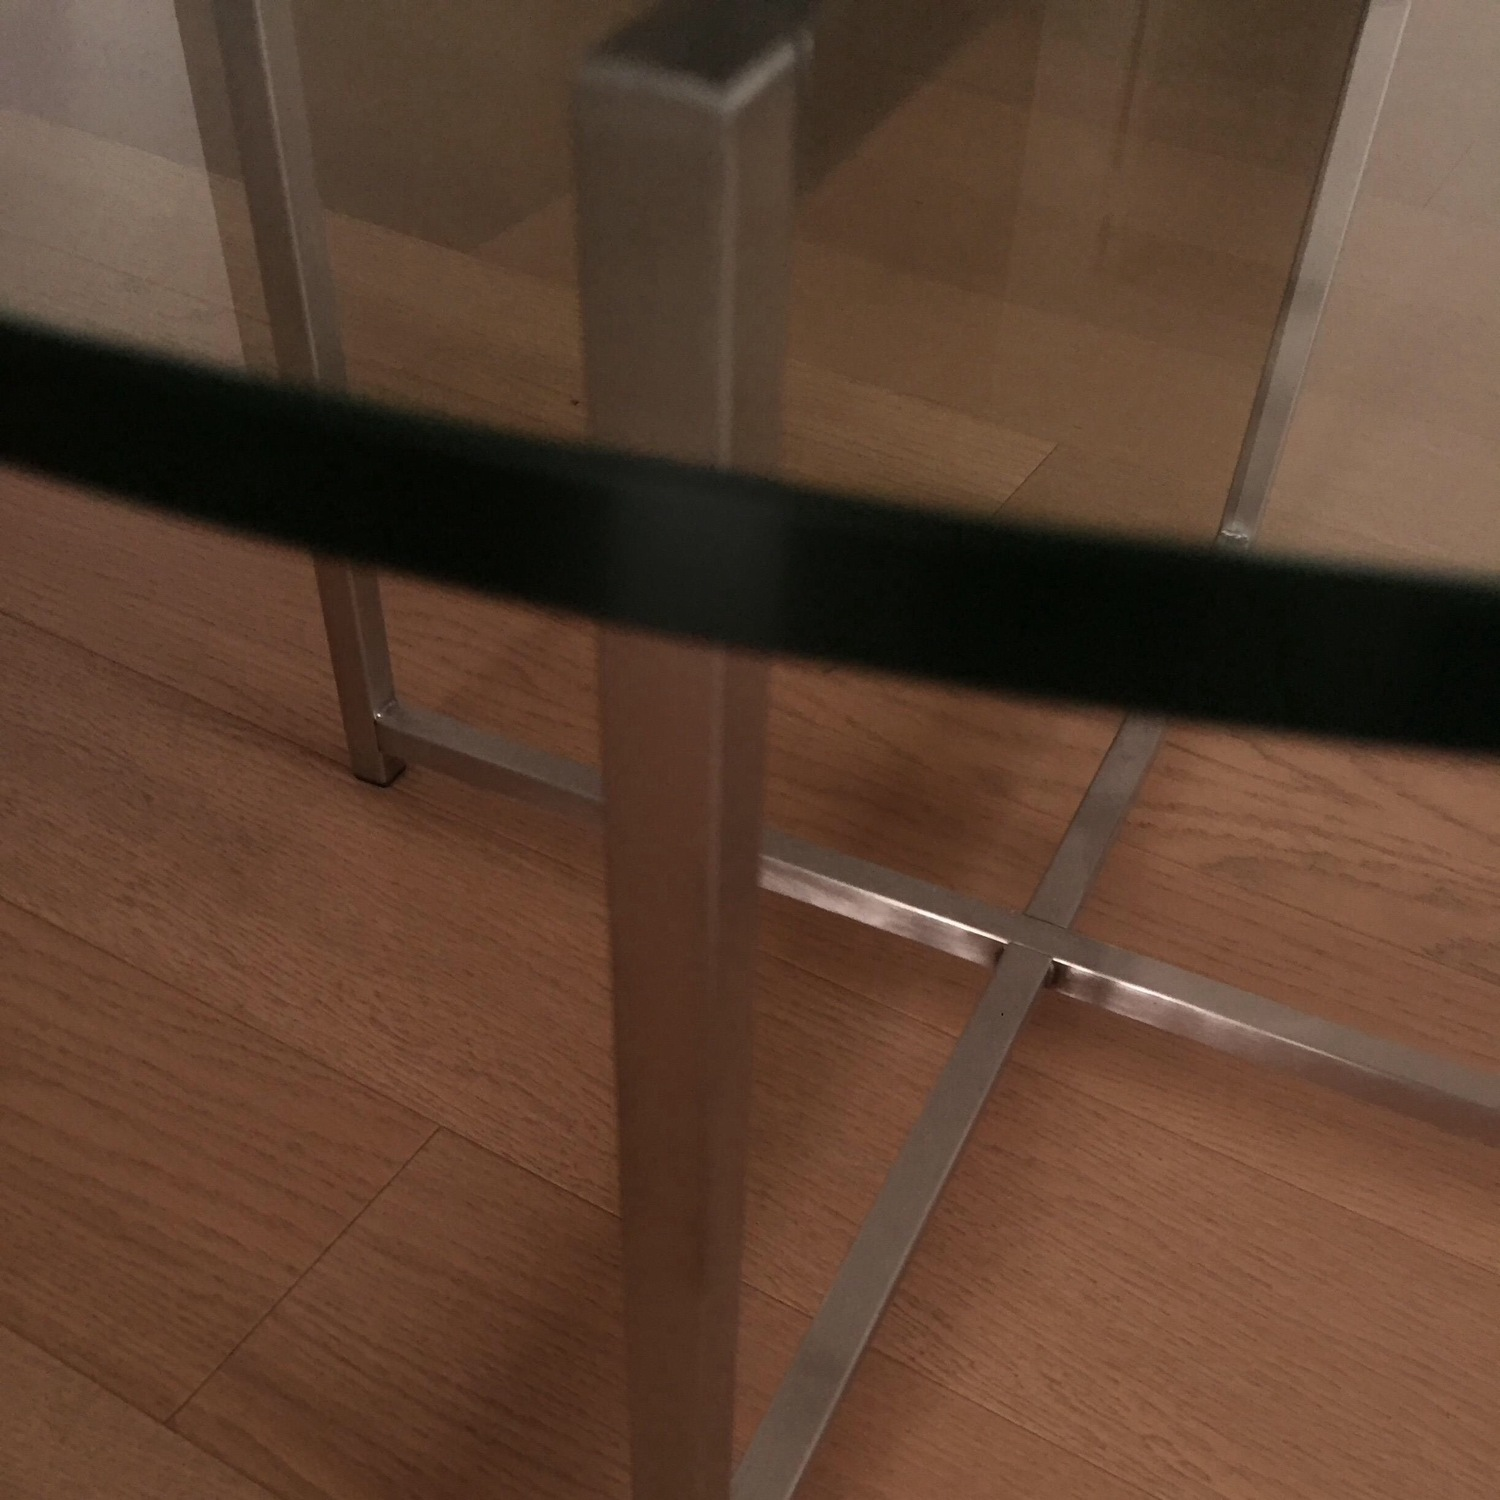 Room & Board Cocktail Table-Stainless Steel Legs - image-1